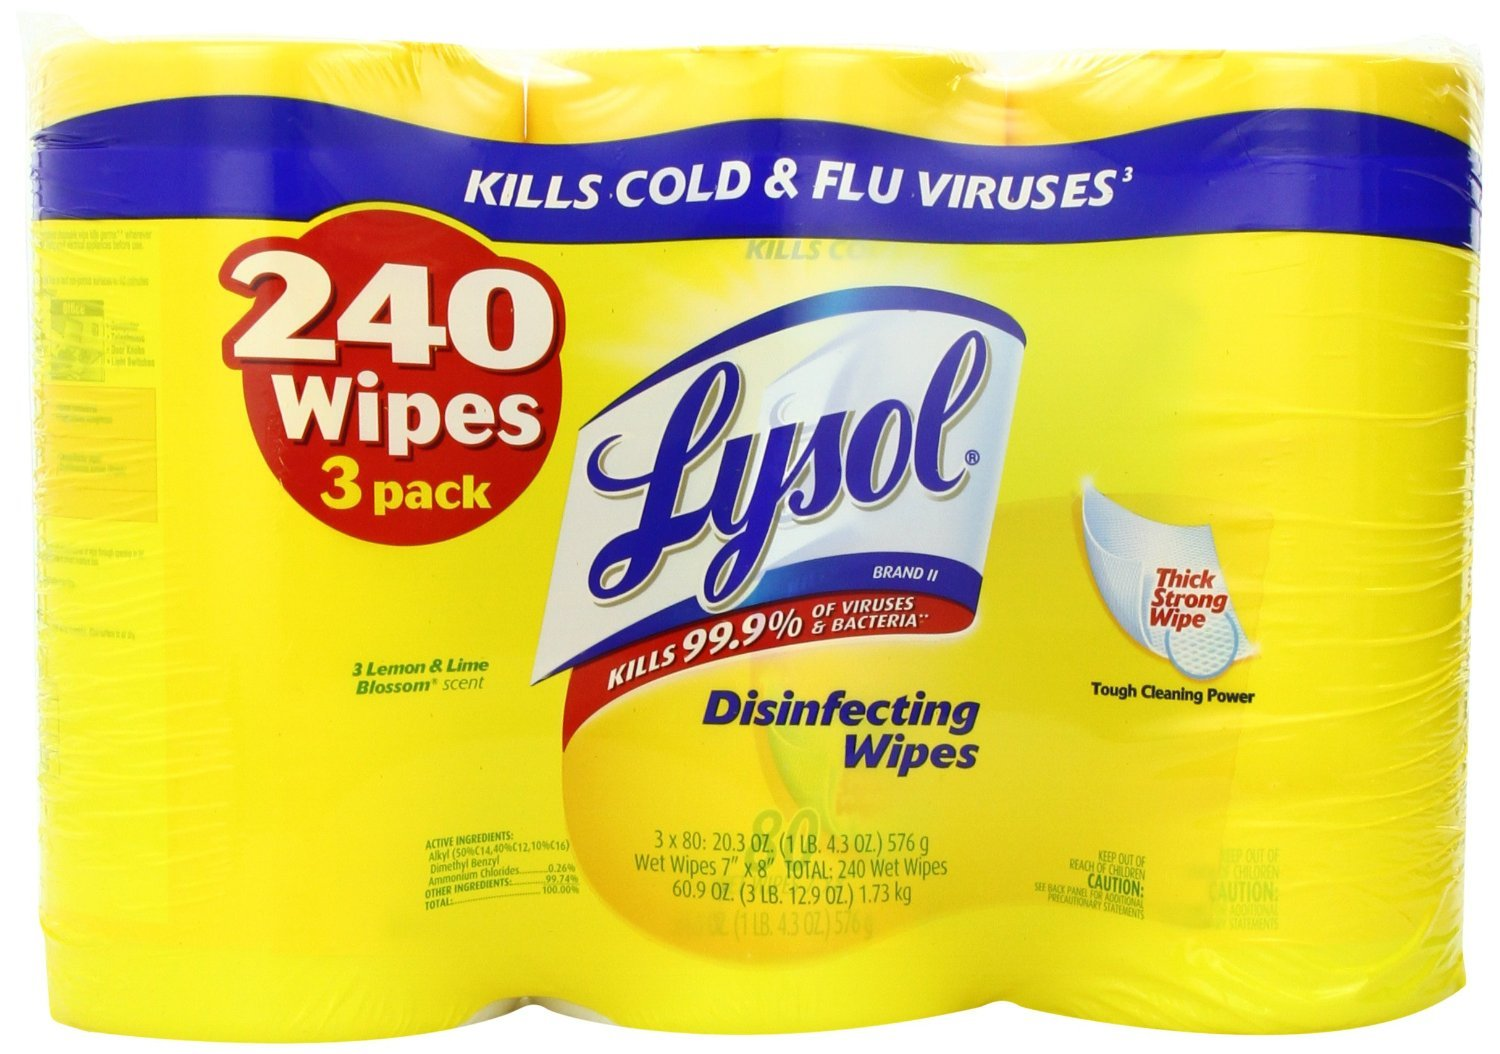 Lysol Disinfecting Wipes Value Pack, Lemon and Lime Blossom (720 Count, Lemon and Lime Blossom) by Lysol